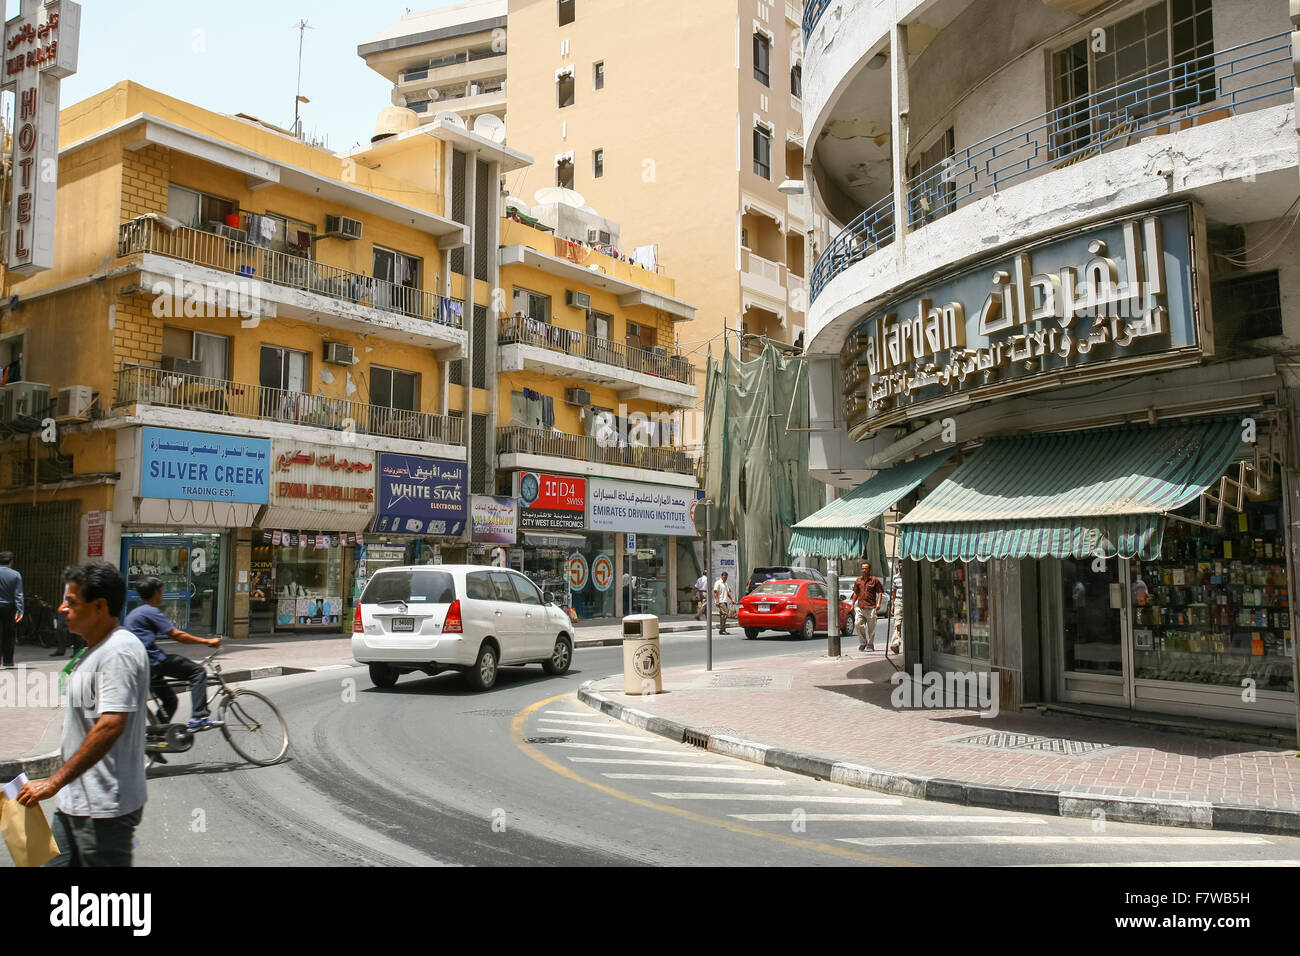 Electronics Shops at Bur Dubai Souk, Dubai, United Arab Emirates - Stock Image